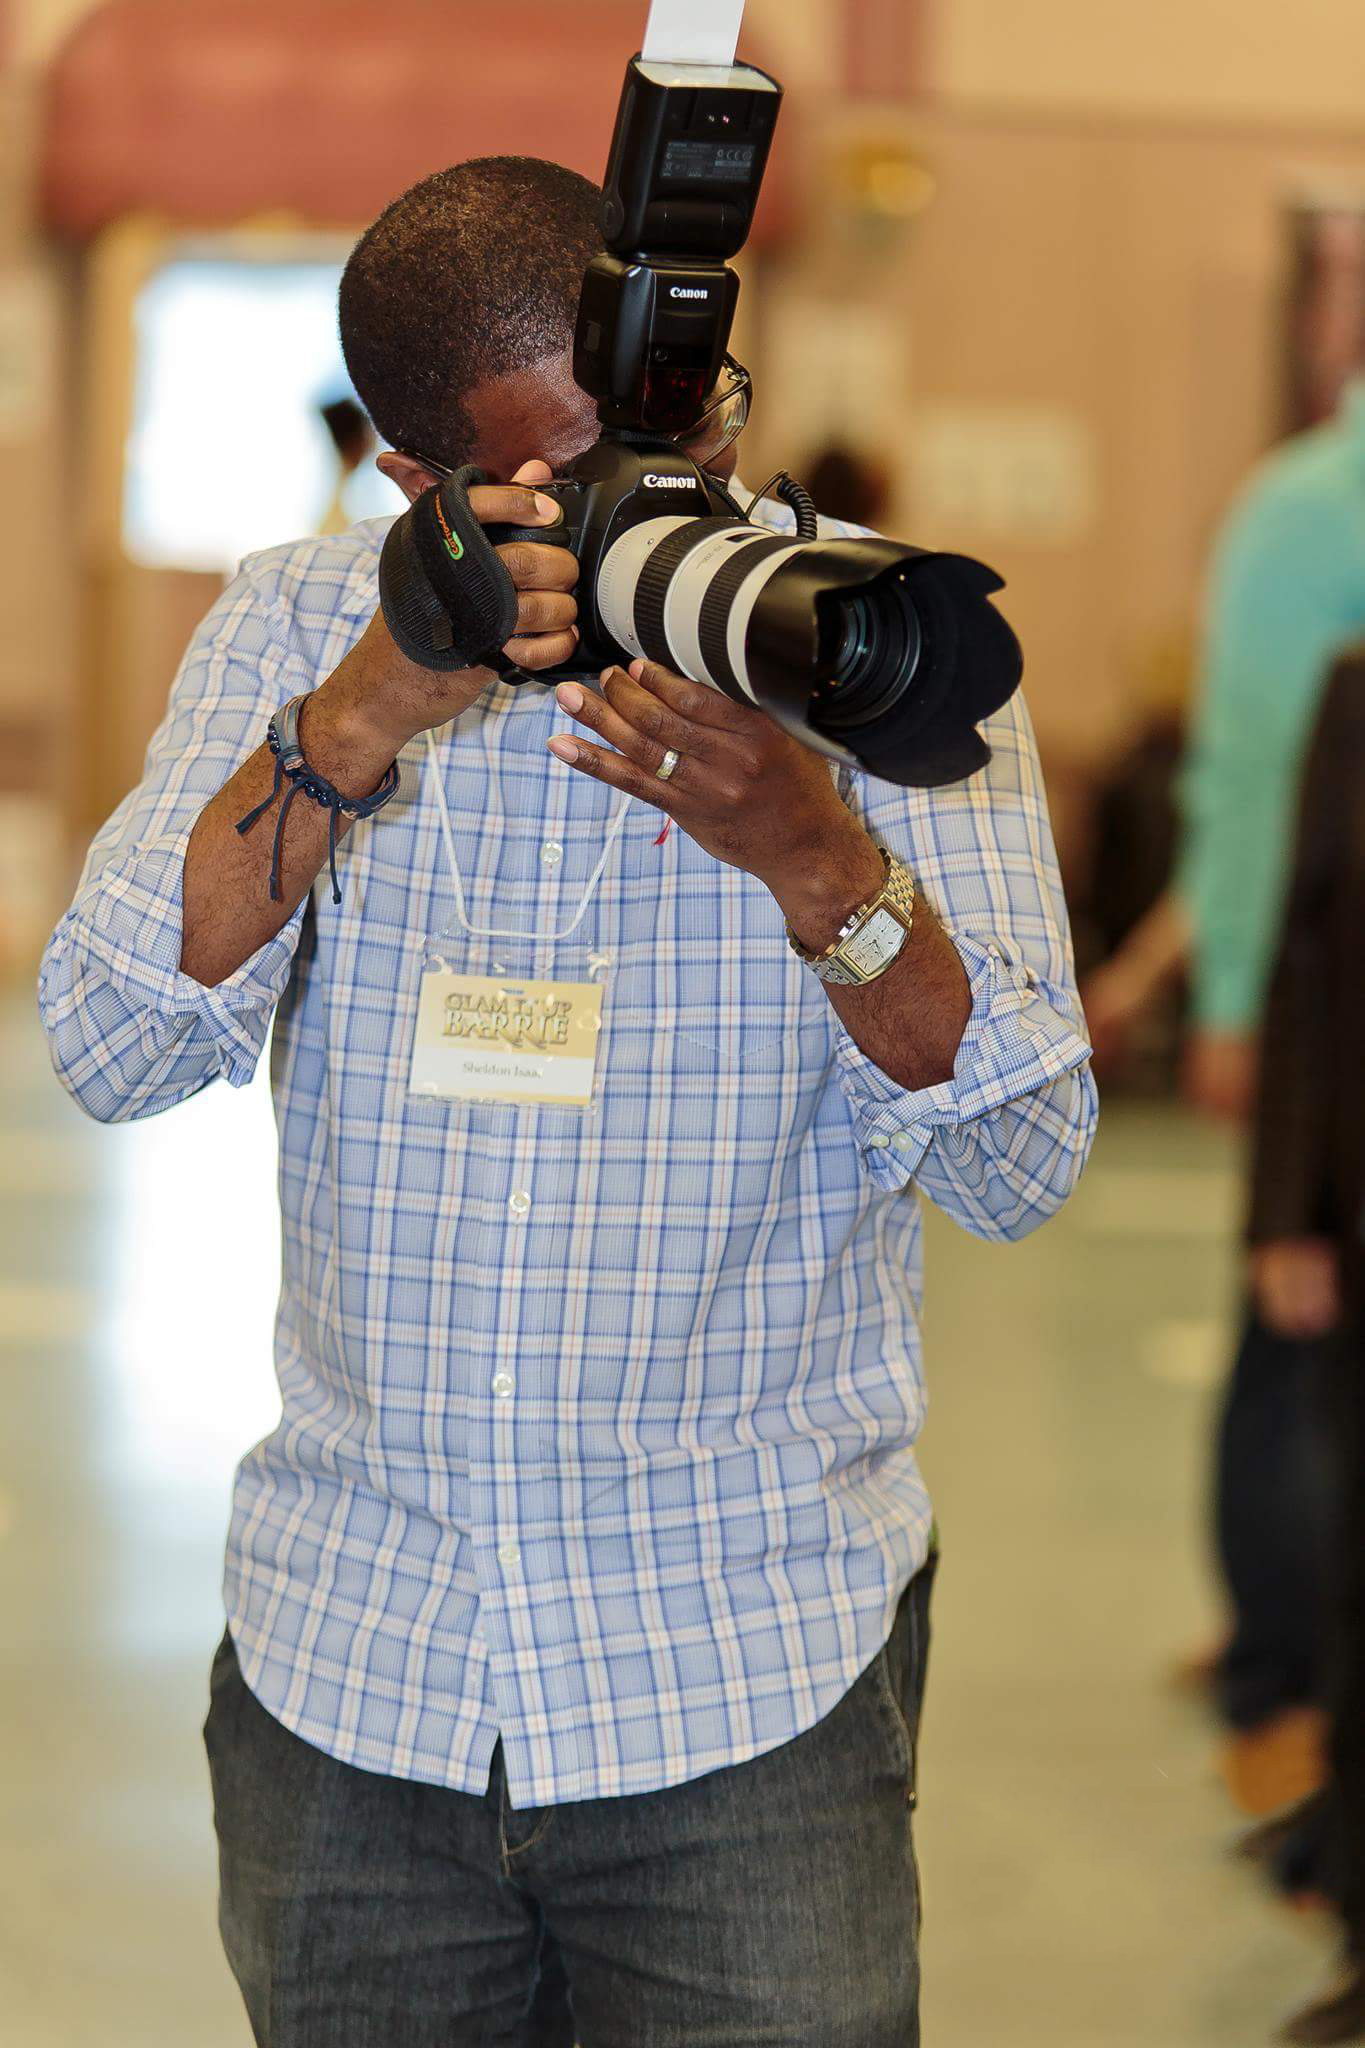 Sheldon Isaac shooting portraits at the Glam It Up Charity event in Barrie